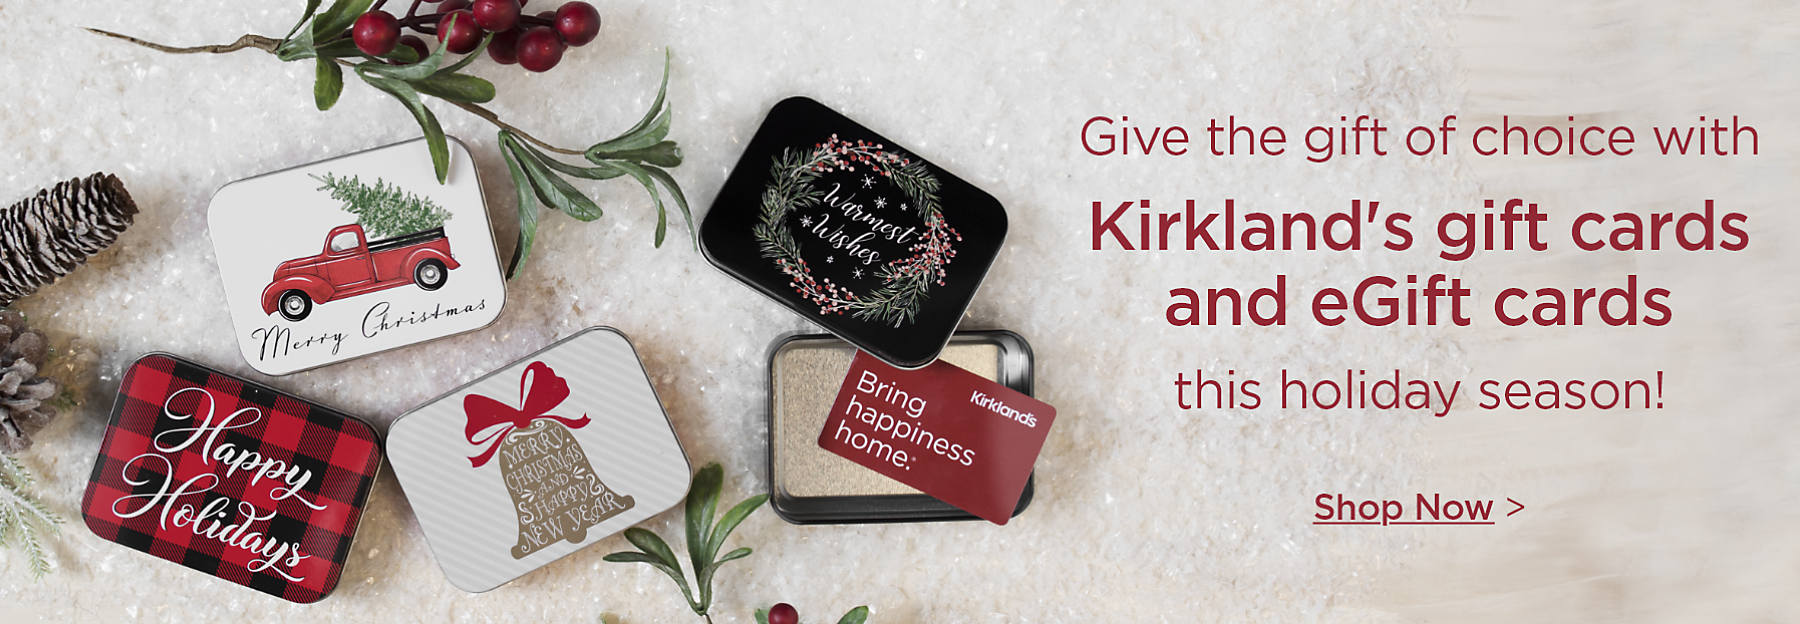 Give the gift of choice with Kirkland's gift cards and eGift cards this holiday season. Shop eGift cards now!